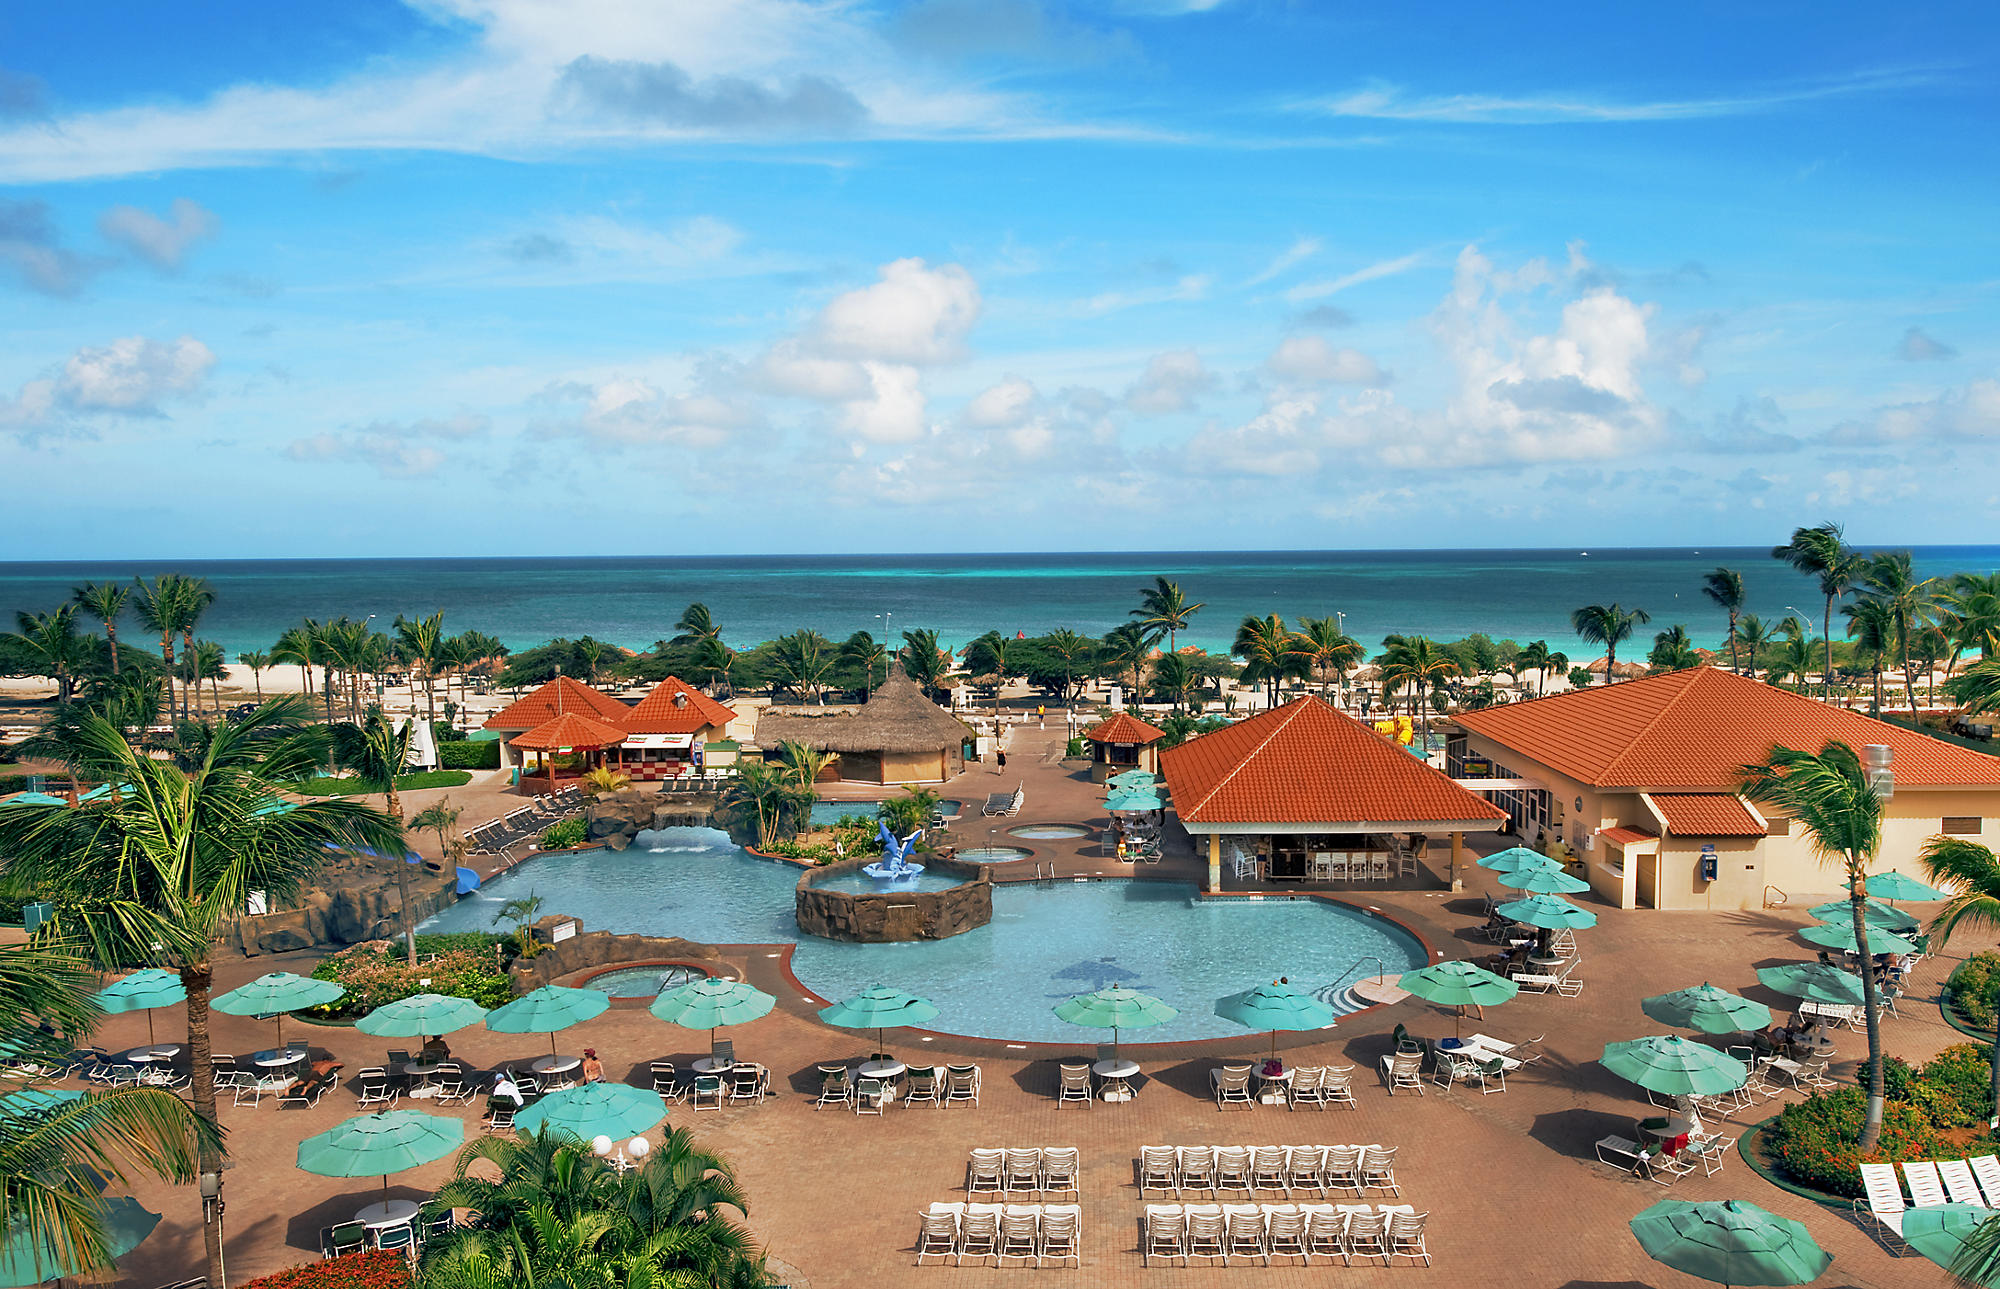 La Cabana Beach Resort and Casino  Oranjestad Aruba